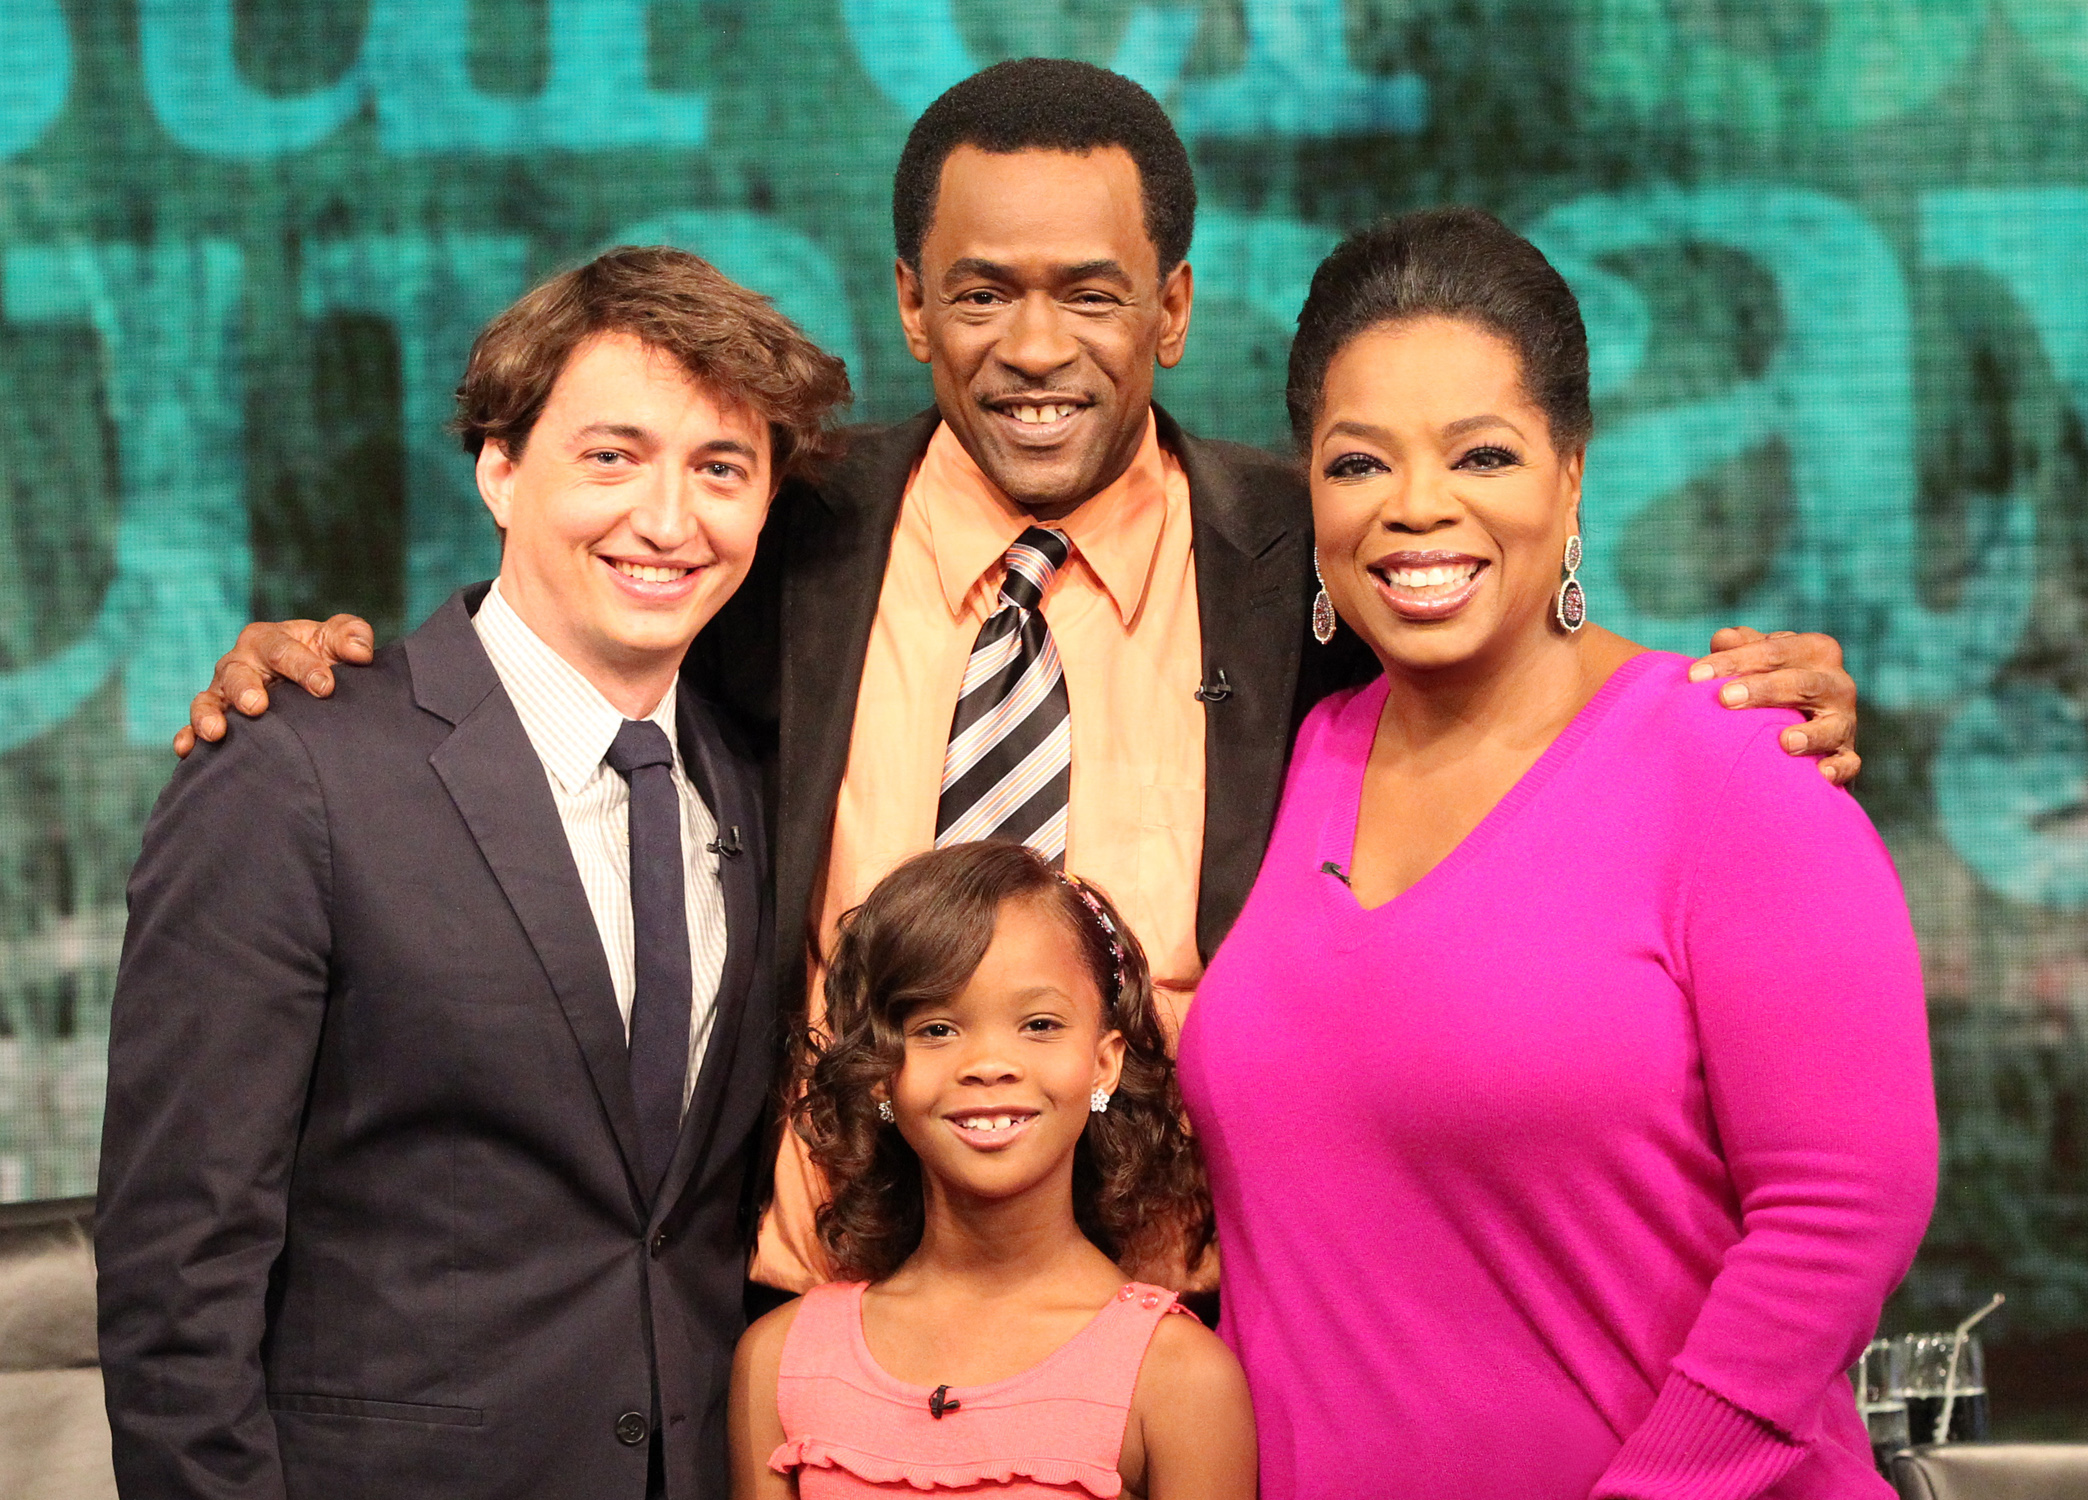 """Oprah Winfrey Interviews Cast Members From The Award-Winning Indie Film """"Beast of the Southern Wild"""" On Super Soul Sunday"""